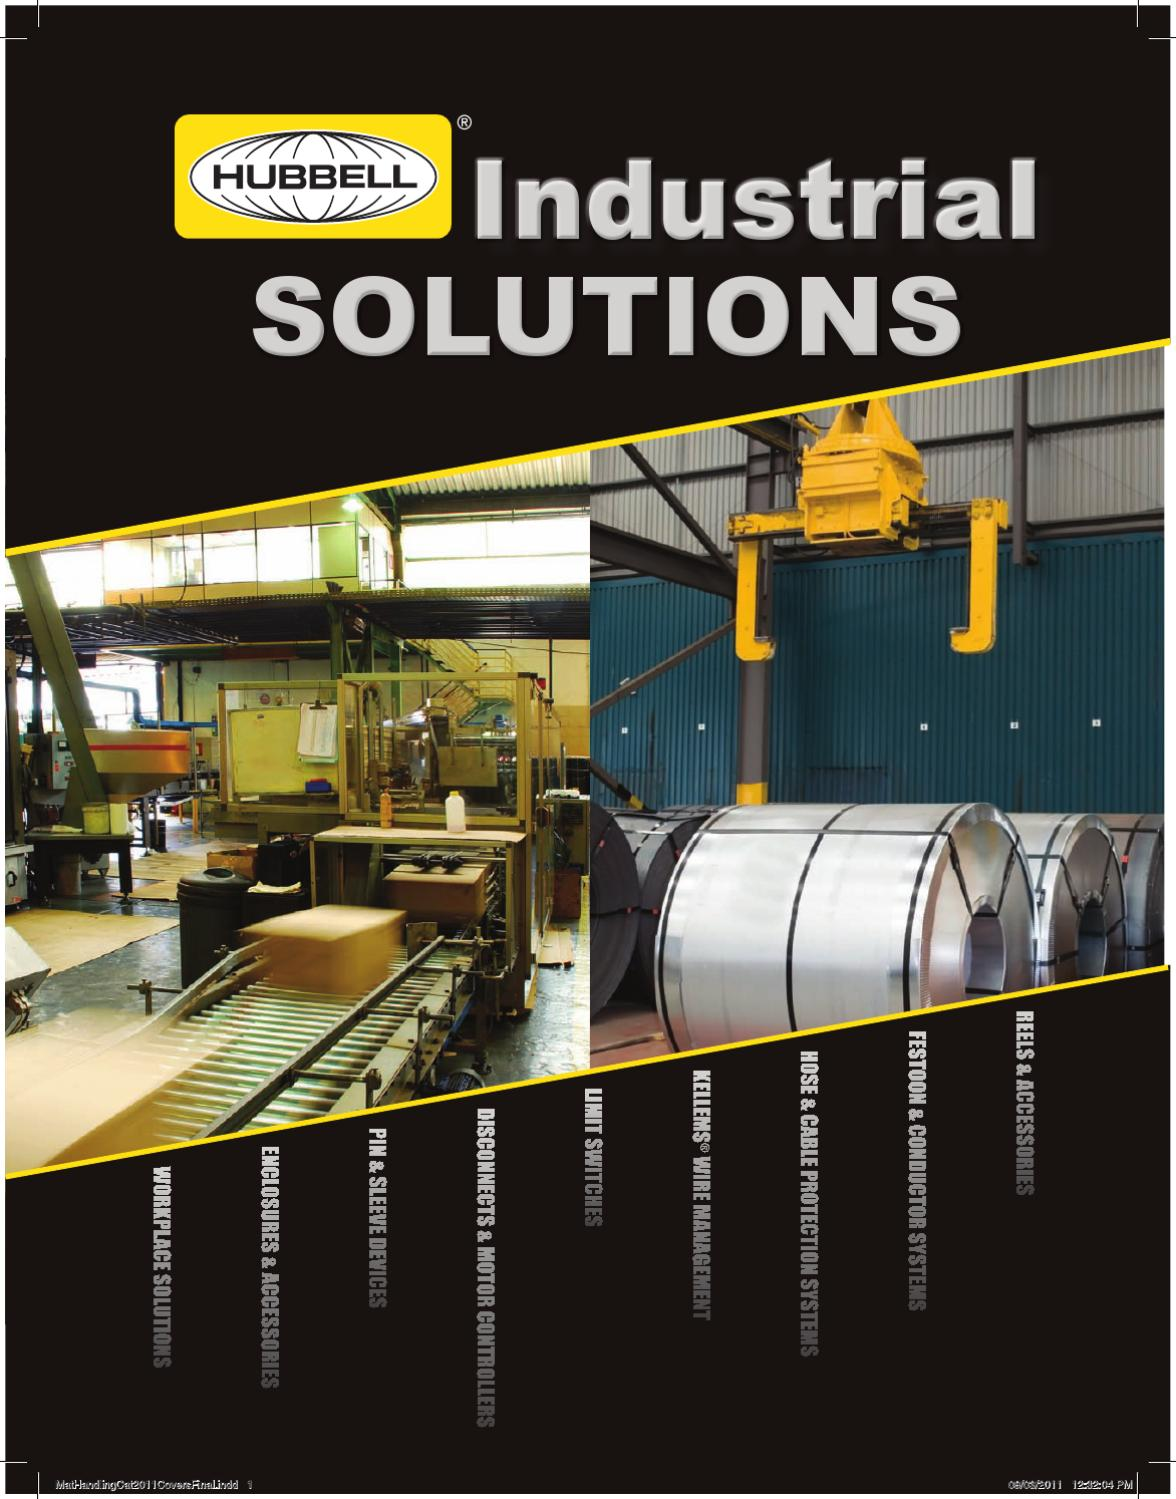 Hubbell Industrial Solutions Catalogue By Hugh V Issuu Magnet Controller Wiring Diagrams